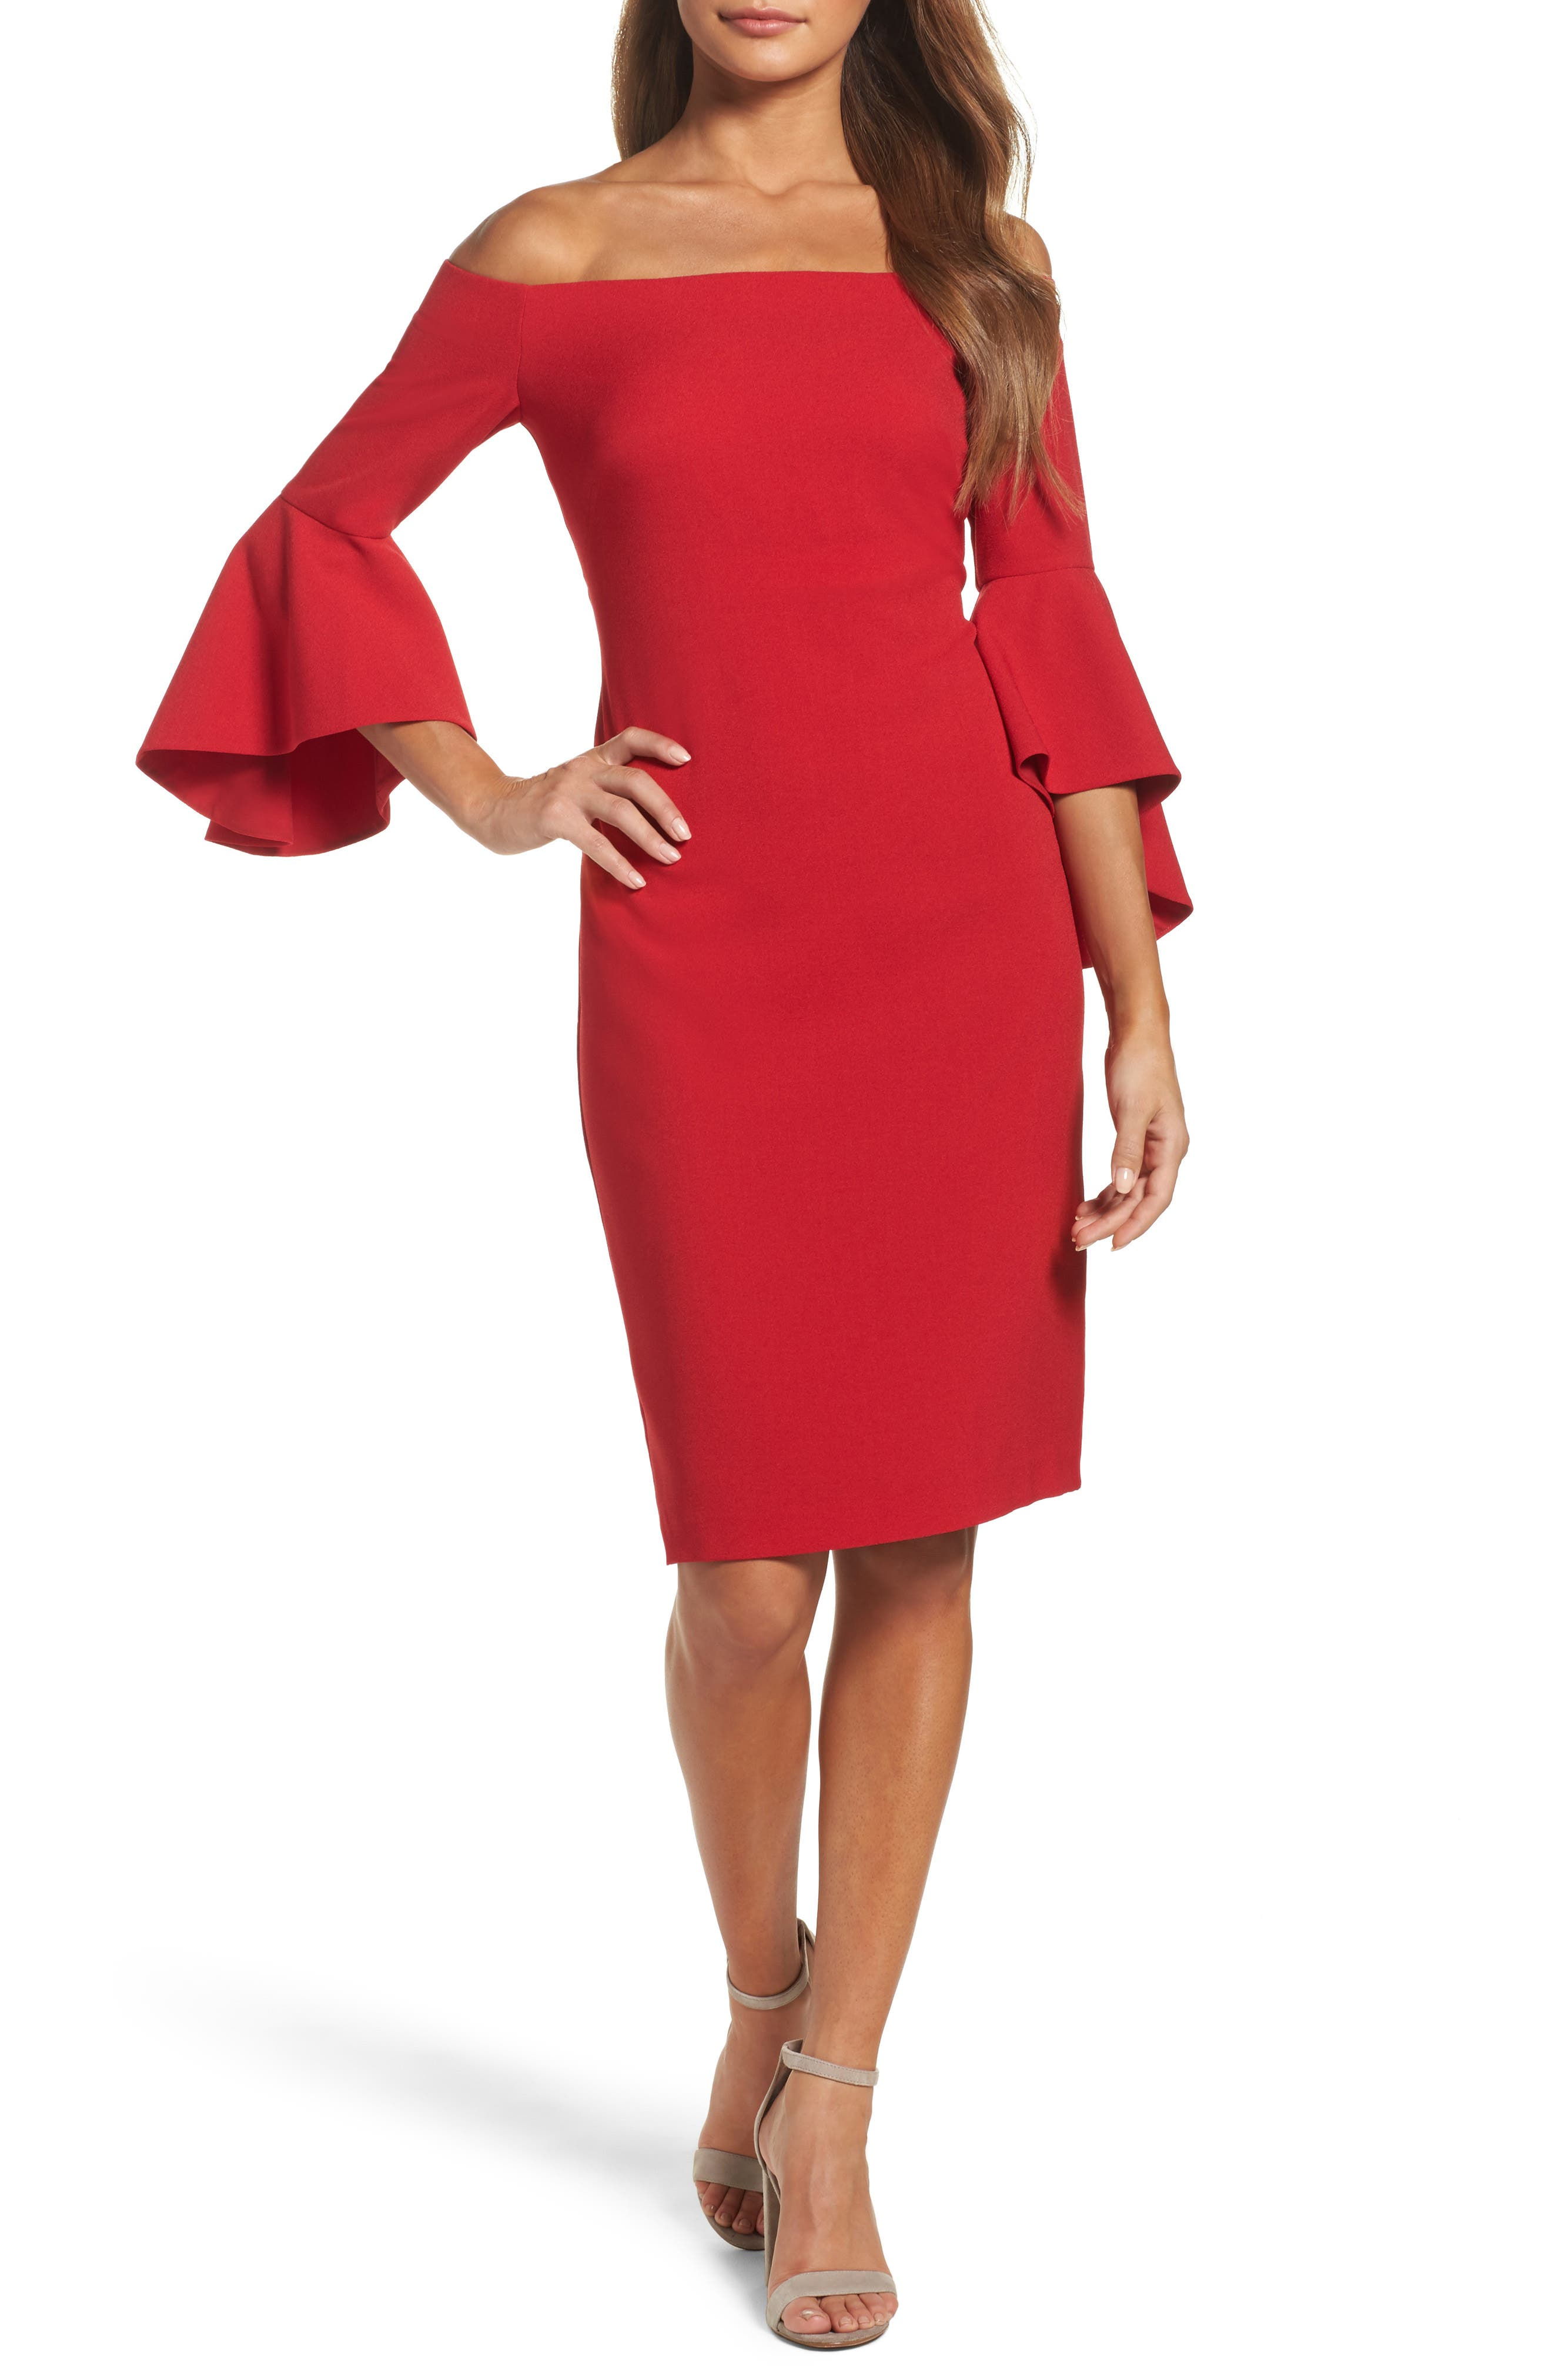 Off the Shoulder Dress,                             Main thumbnail 1, color,                             RED JESTER